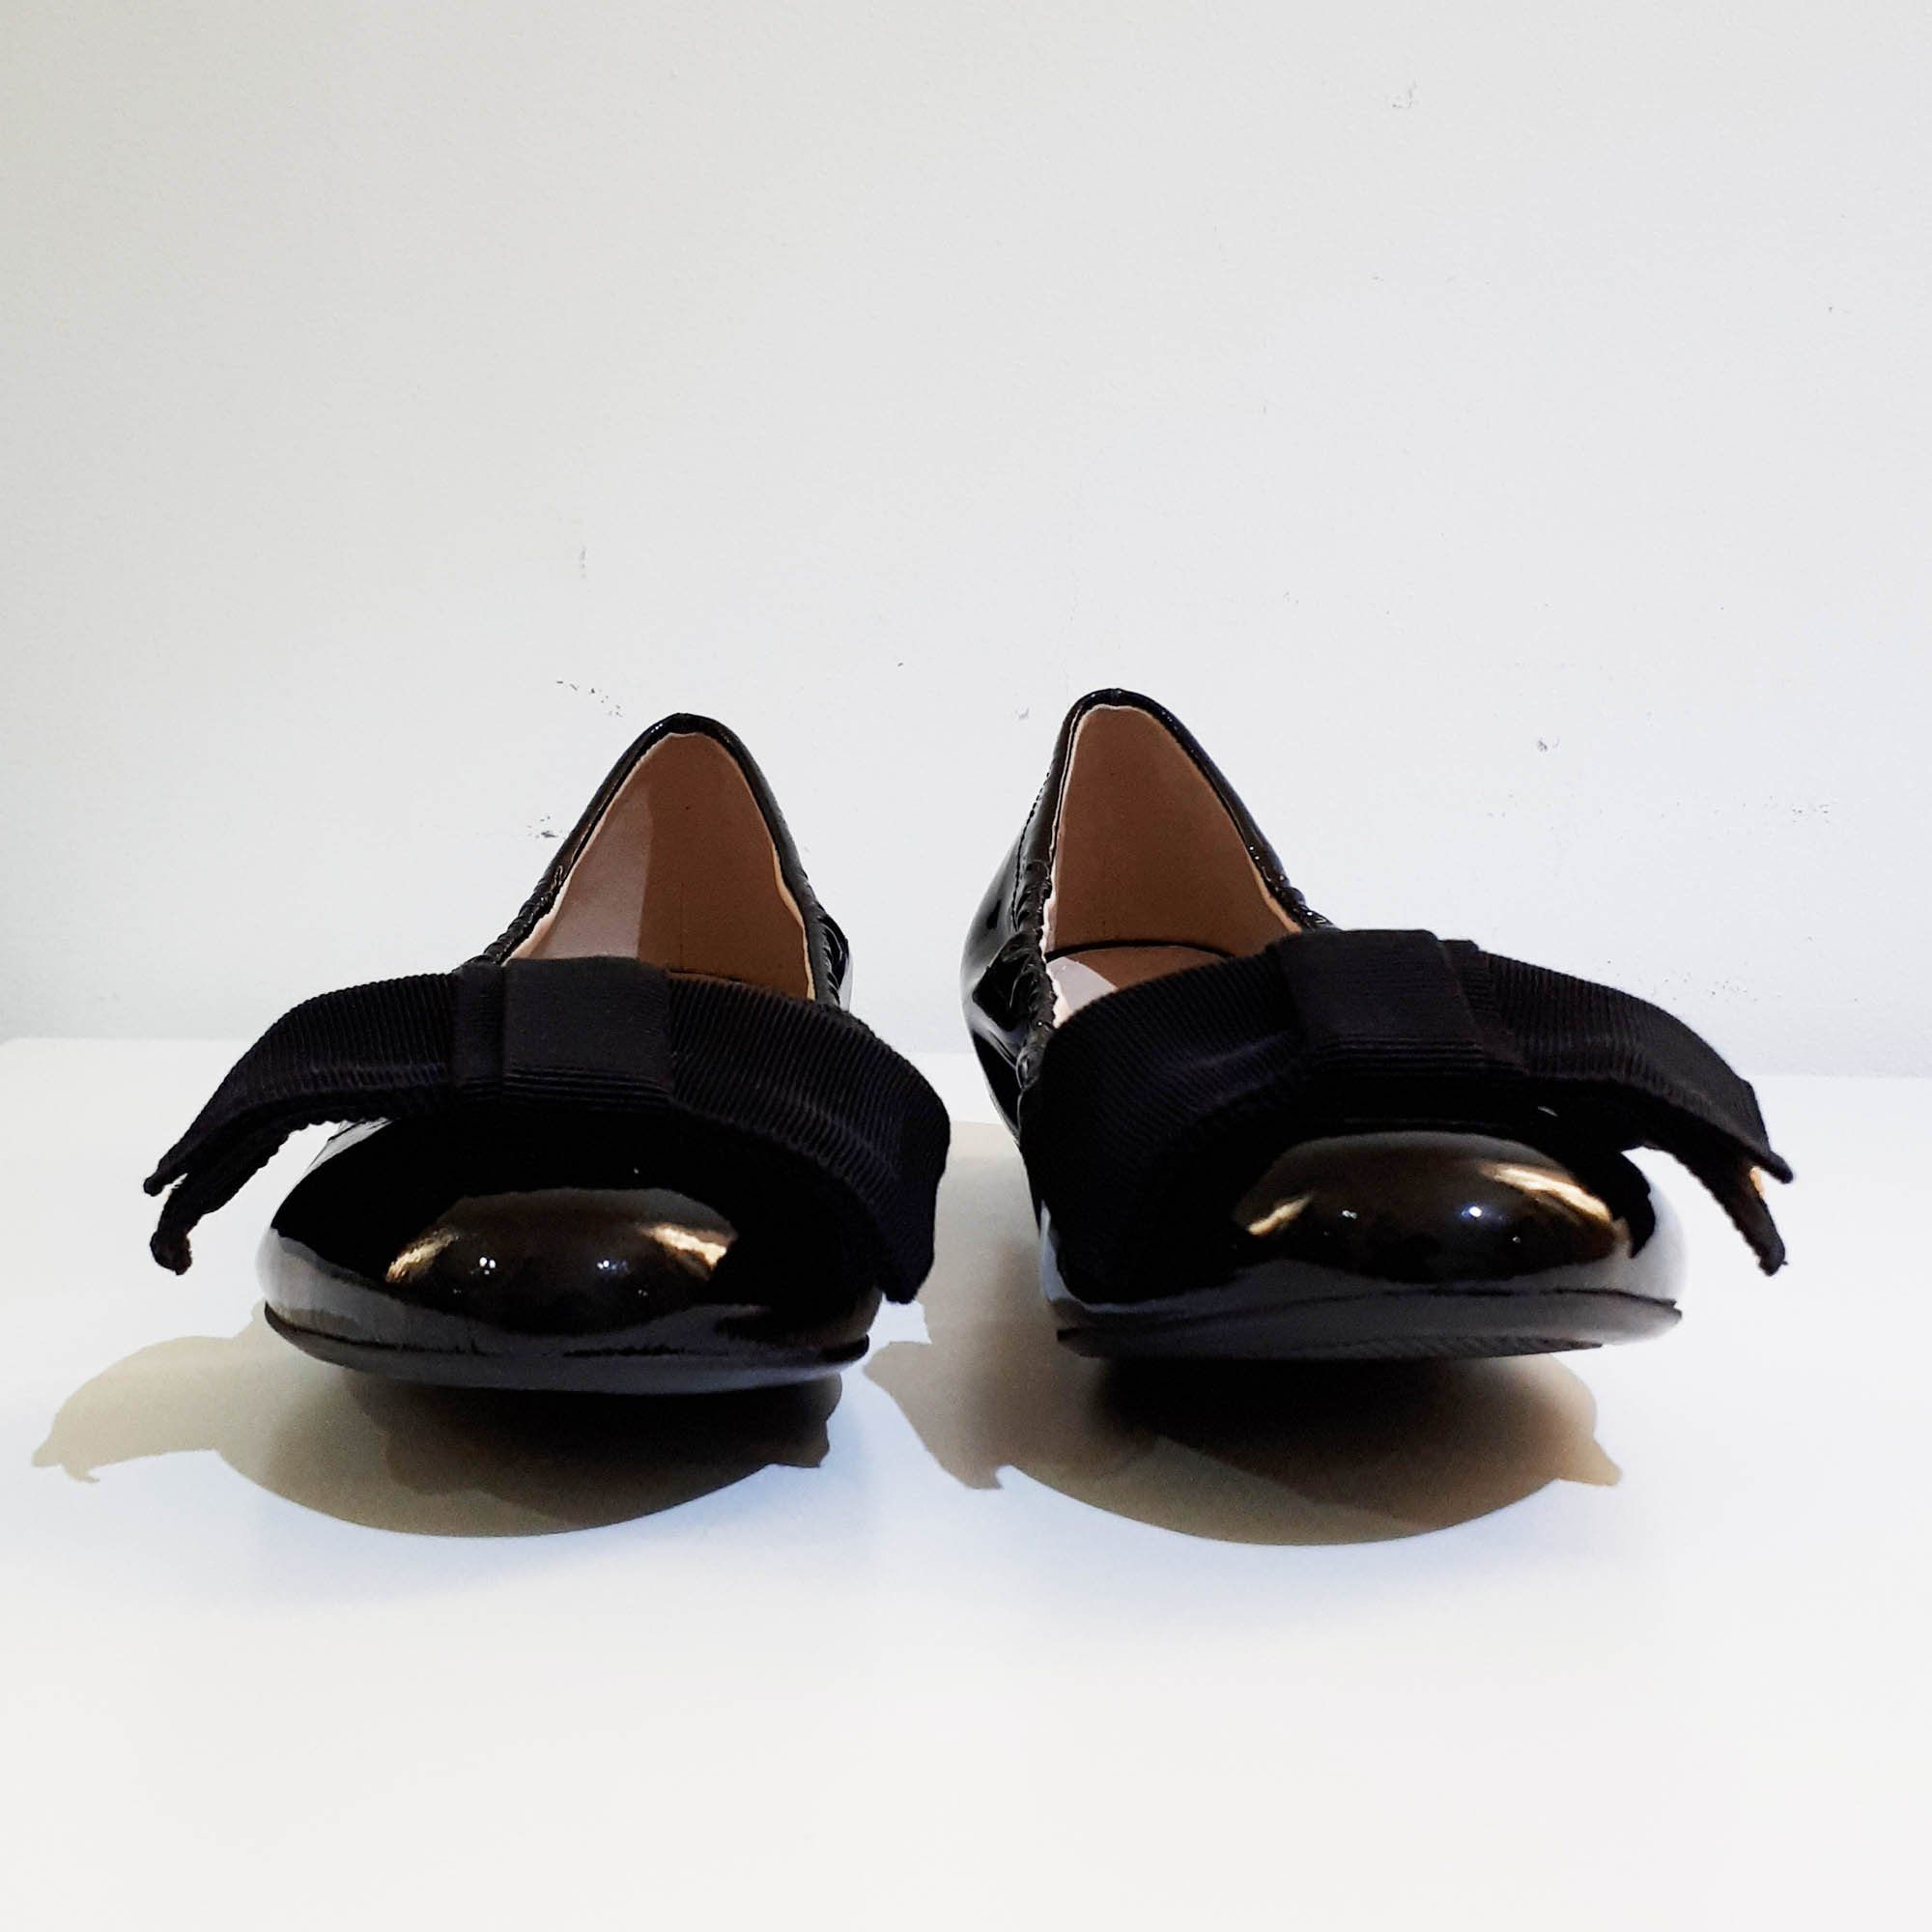 Prada Black Patent Leather Ballerina